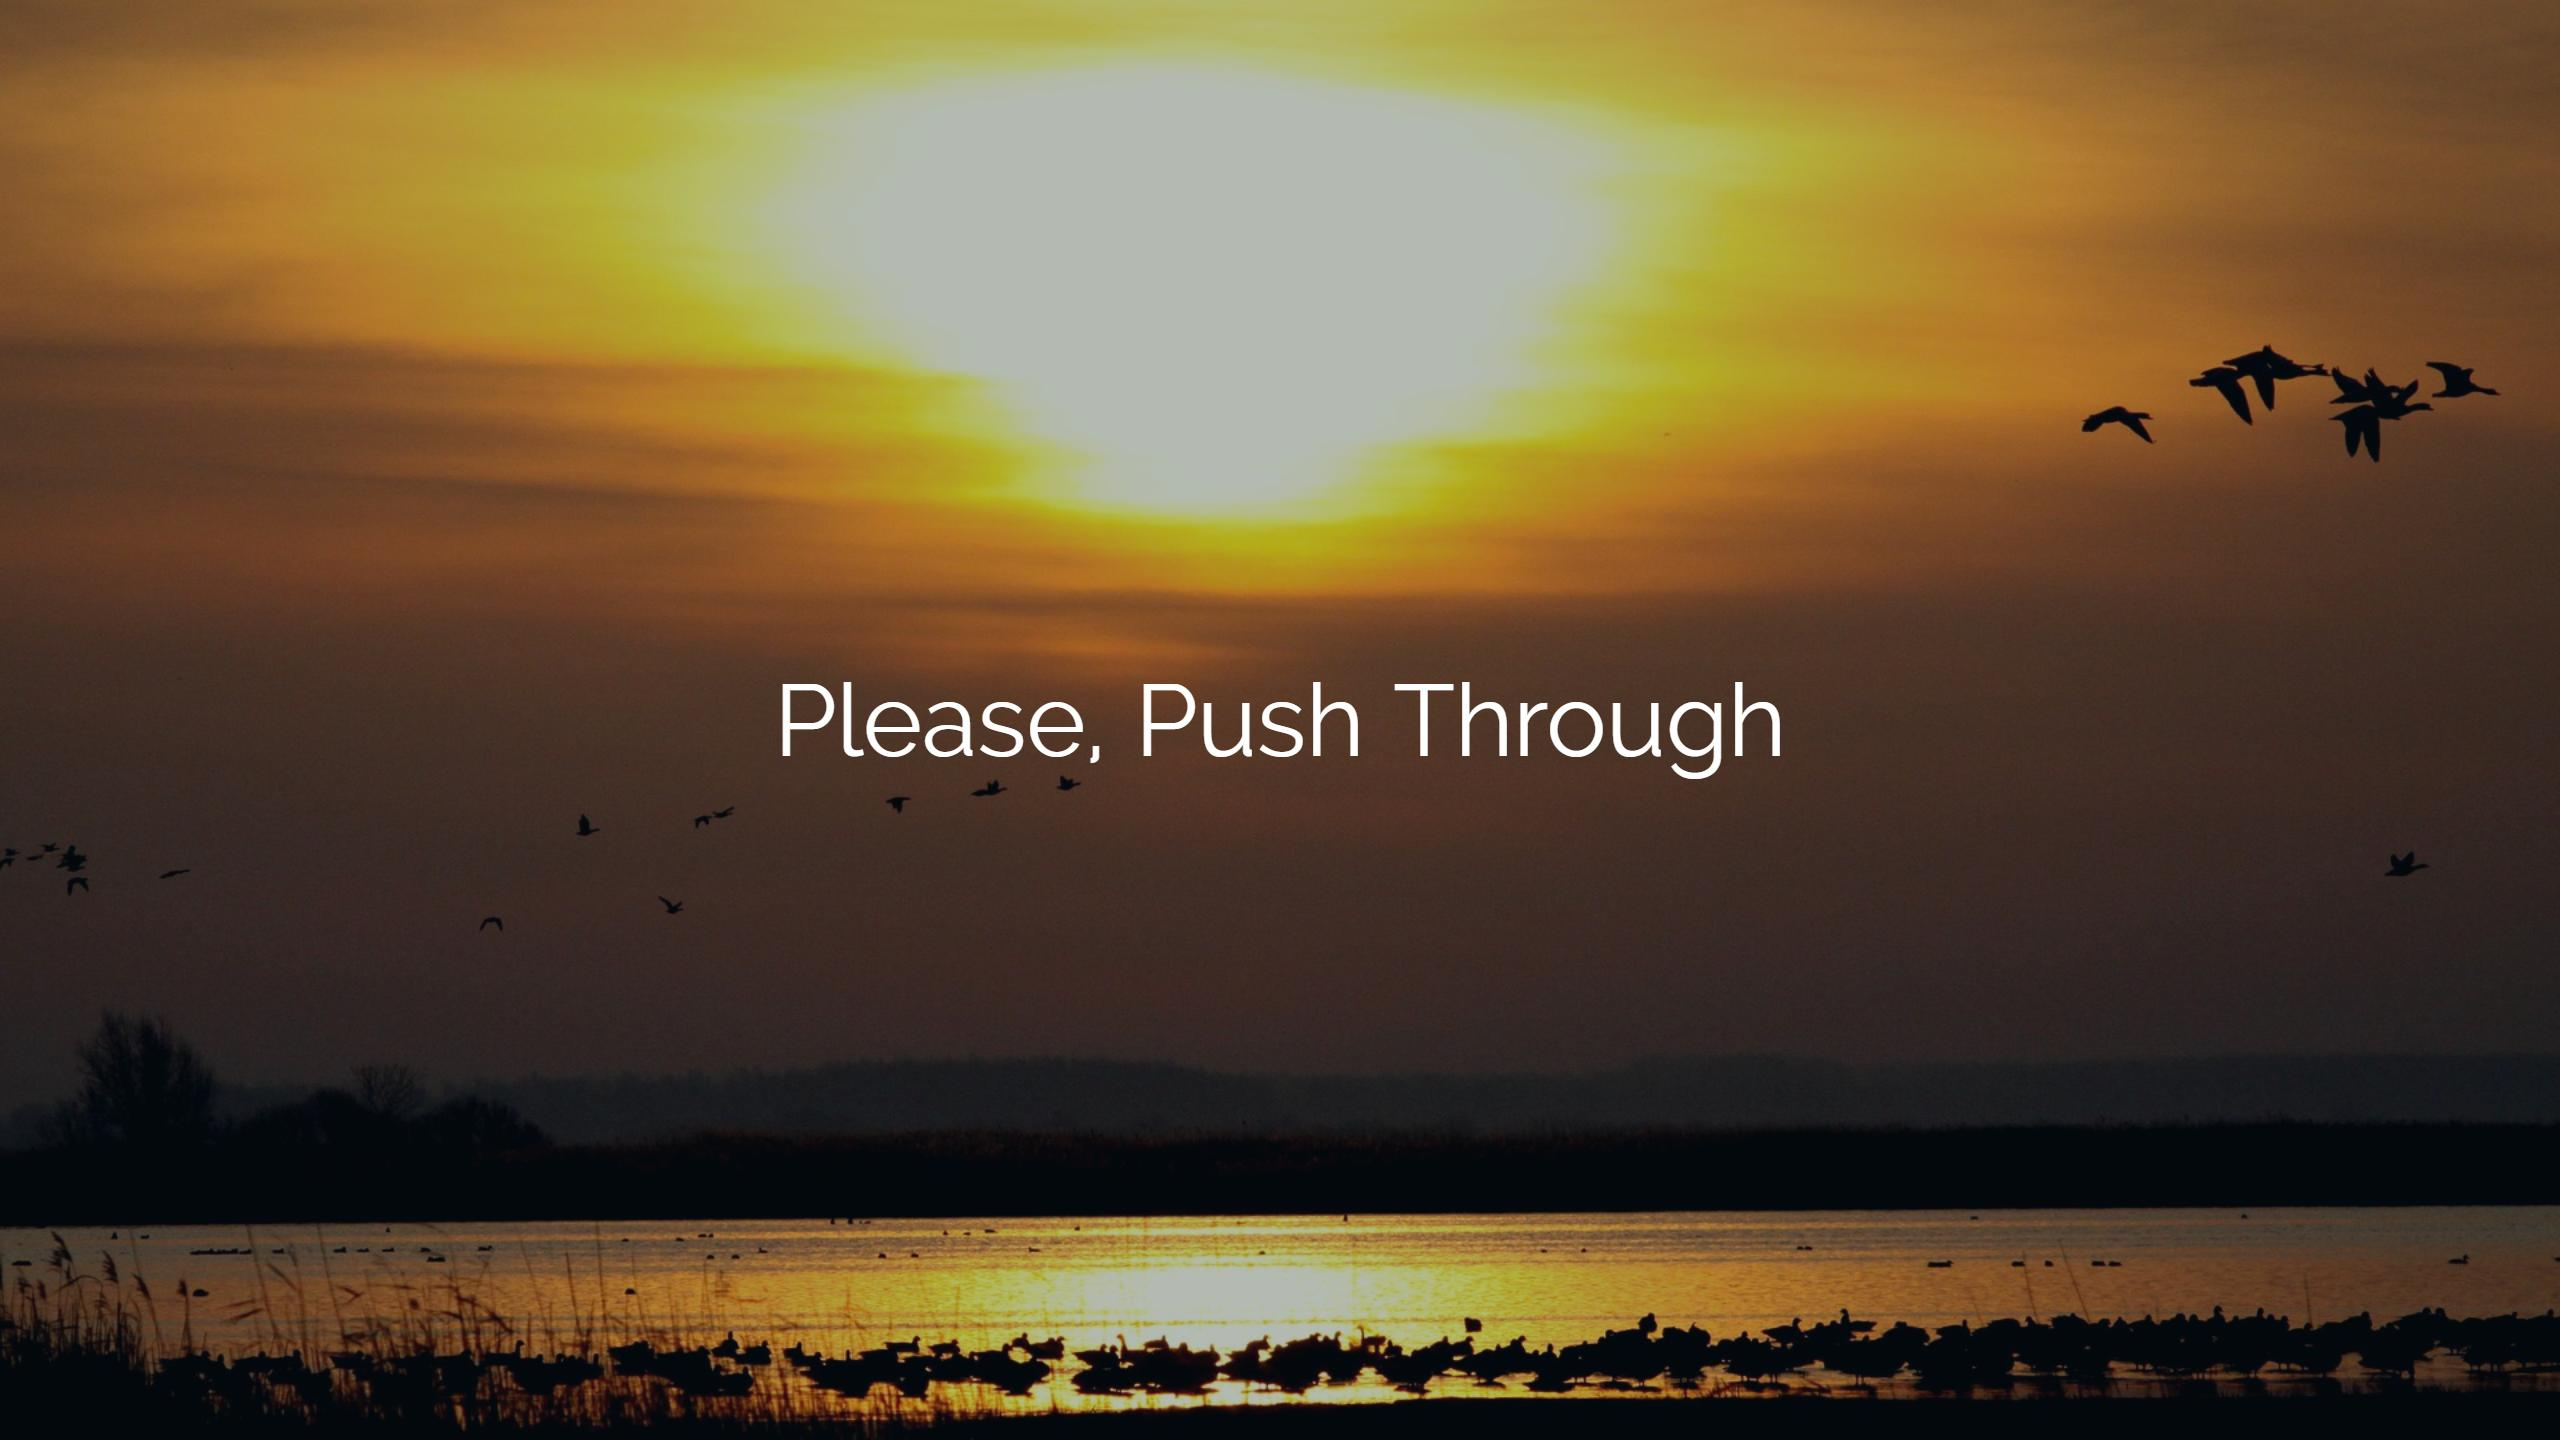 Please, Push Through